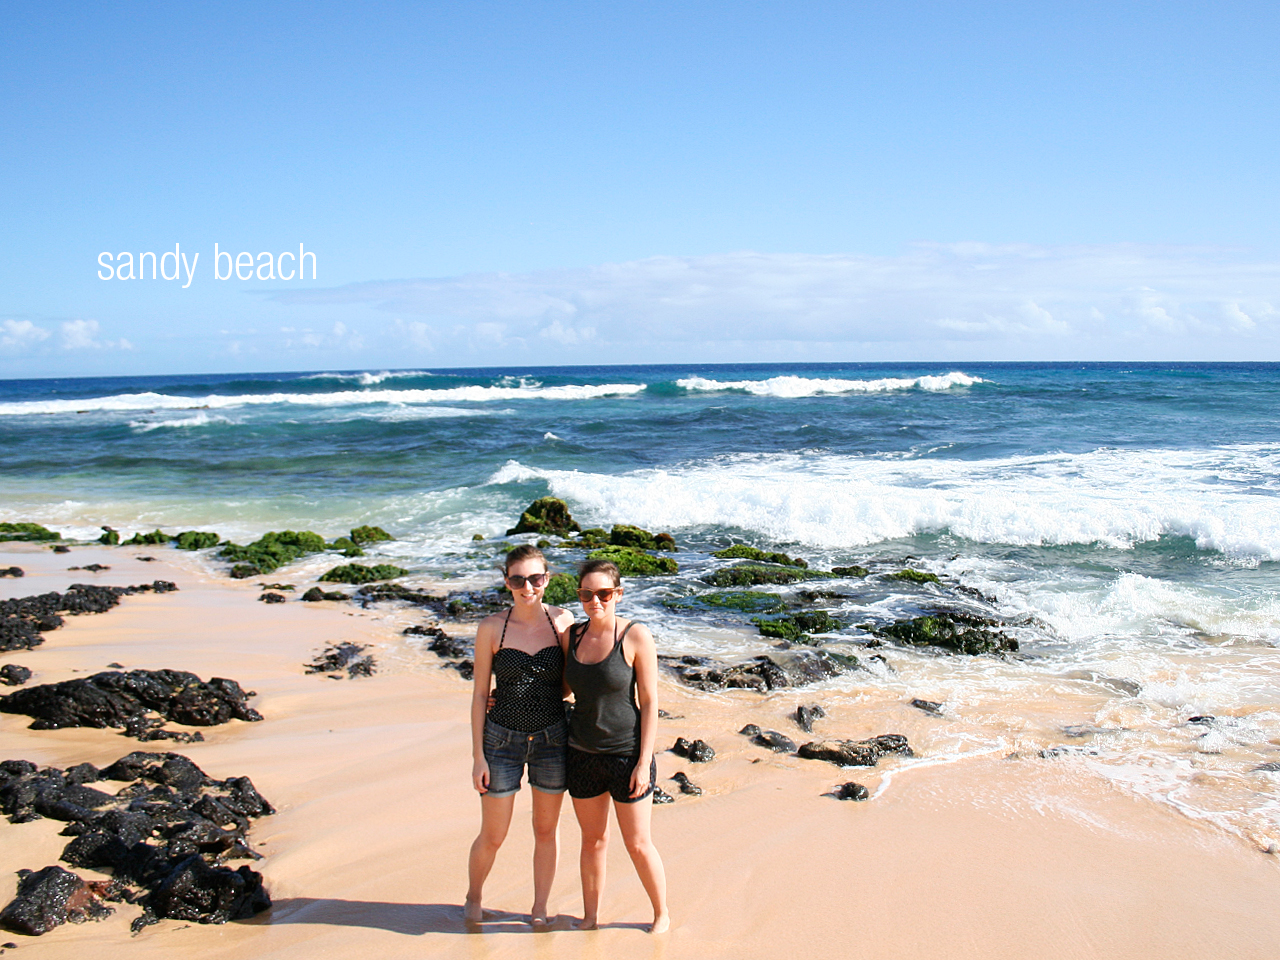 Later the same day we took a 2.5 hour bus ride/ waiting for the bus journey, to get to a less crowded, beautiful beach called Sandy Beach. The waves were really big for swimming and we now know why it is called sandy beach. Never had so much sand in my bathing suit ever. EVER.